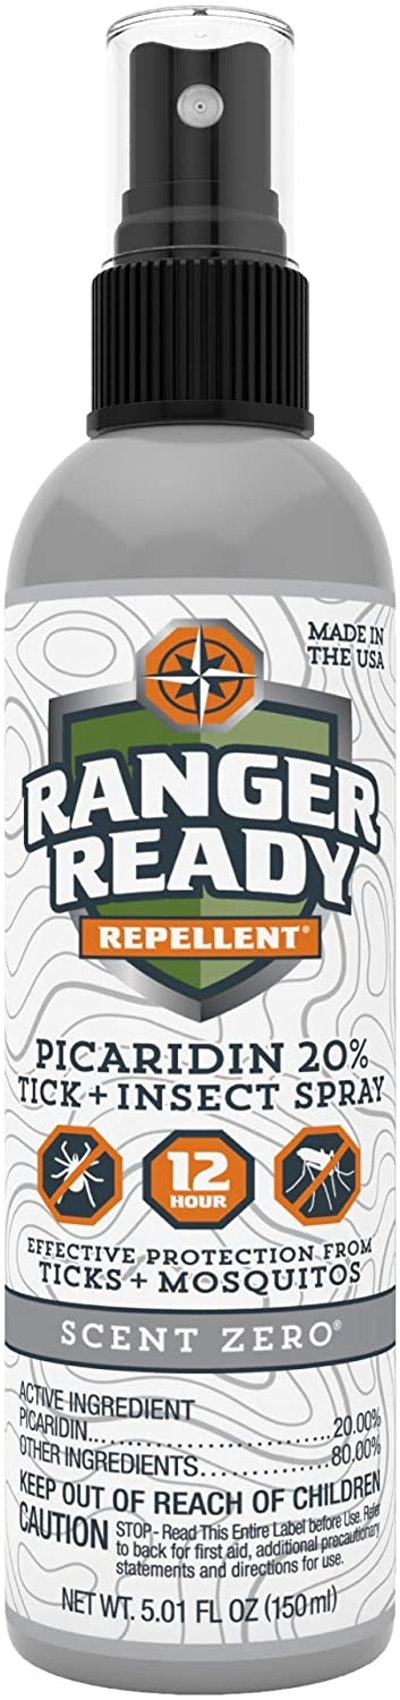 Ranger Ready Tick & Insect Repellent